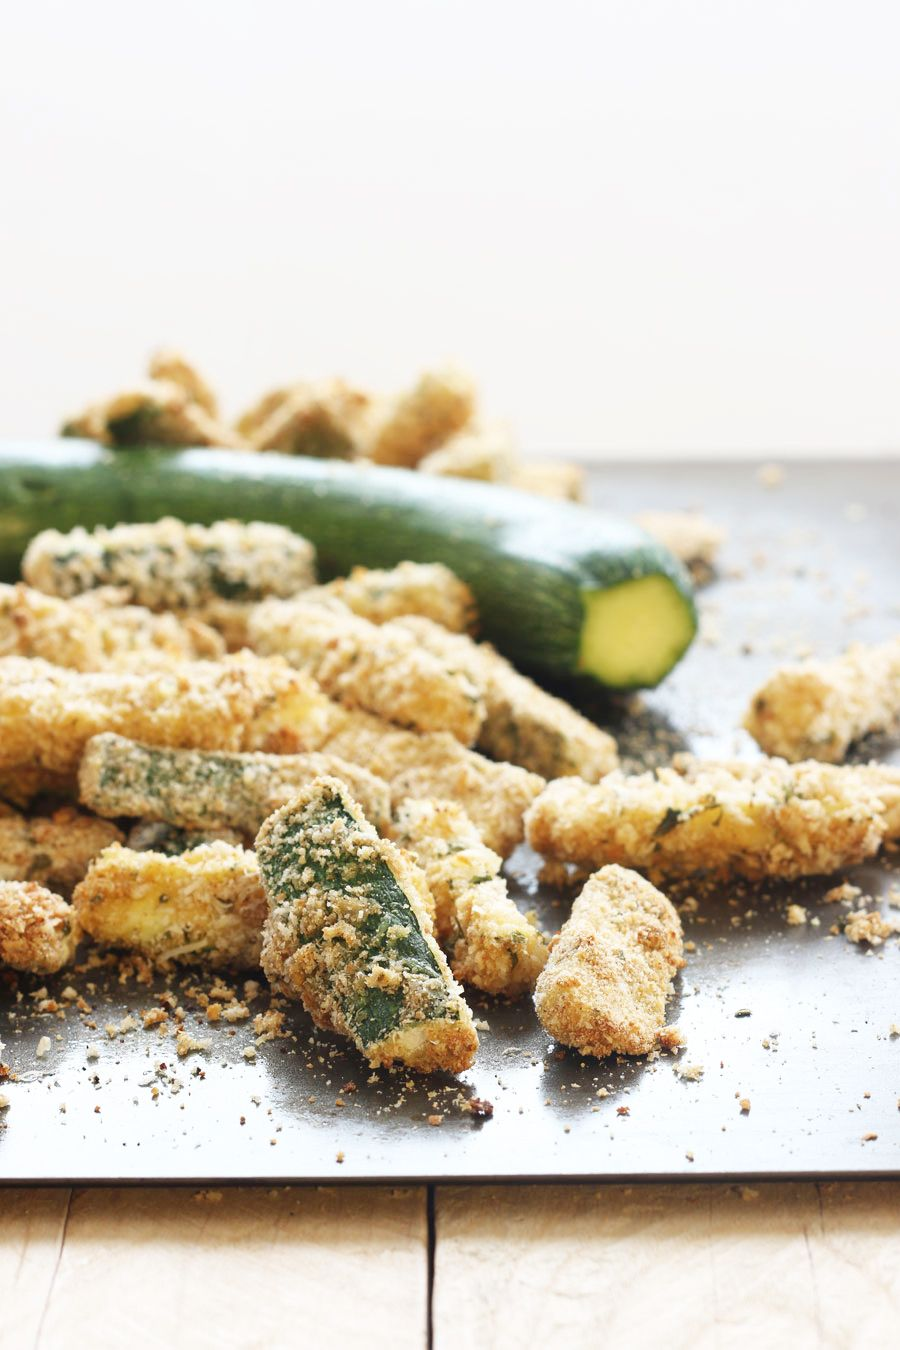 Late August is zucchini season. If you have a garden, you're fully aware of this fact, and you're probably eagerly looking for people to off-load your ba-gillion pounds of zucchini onto. Since I do...